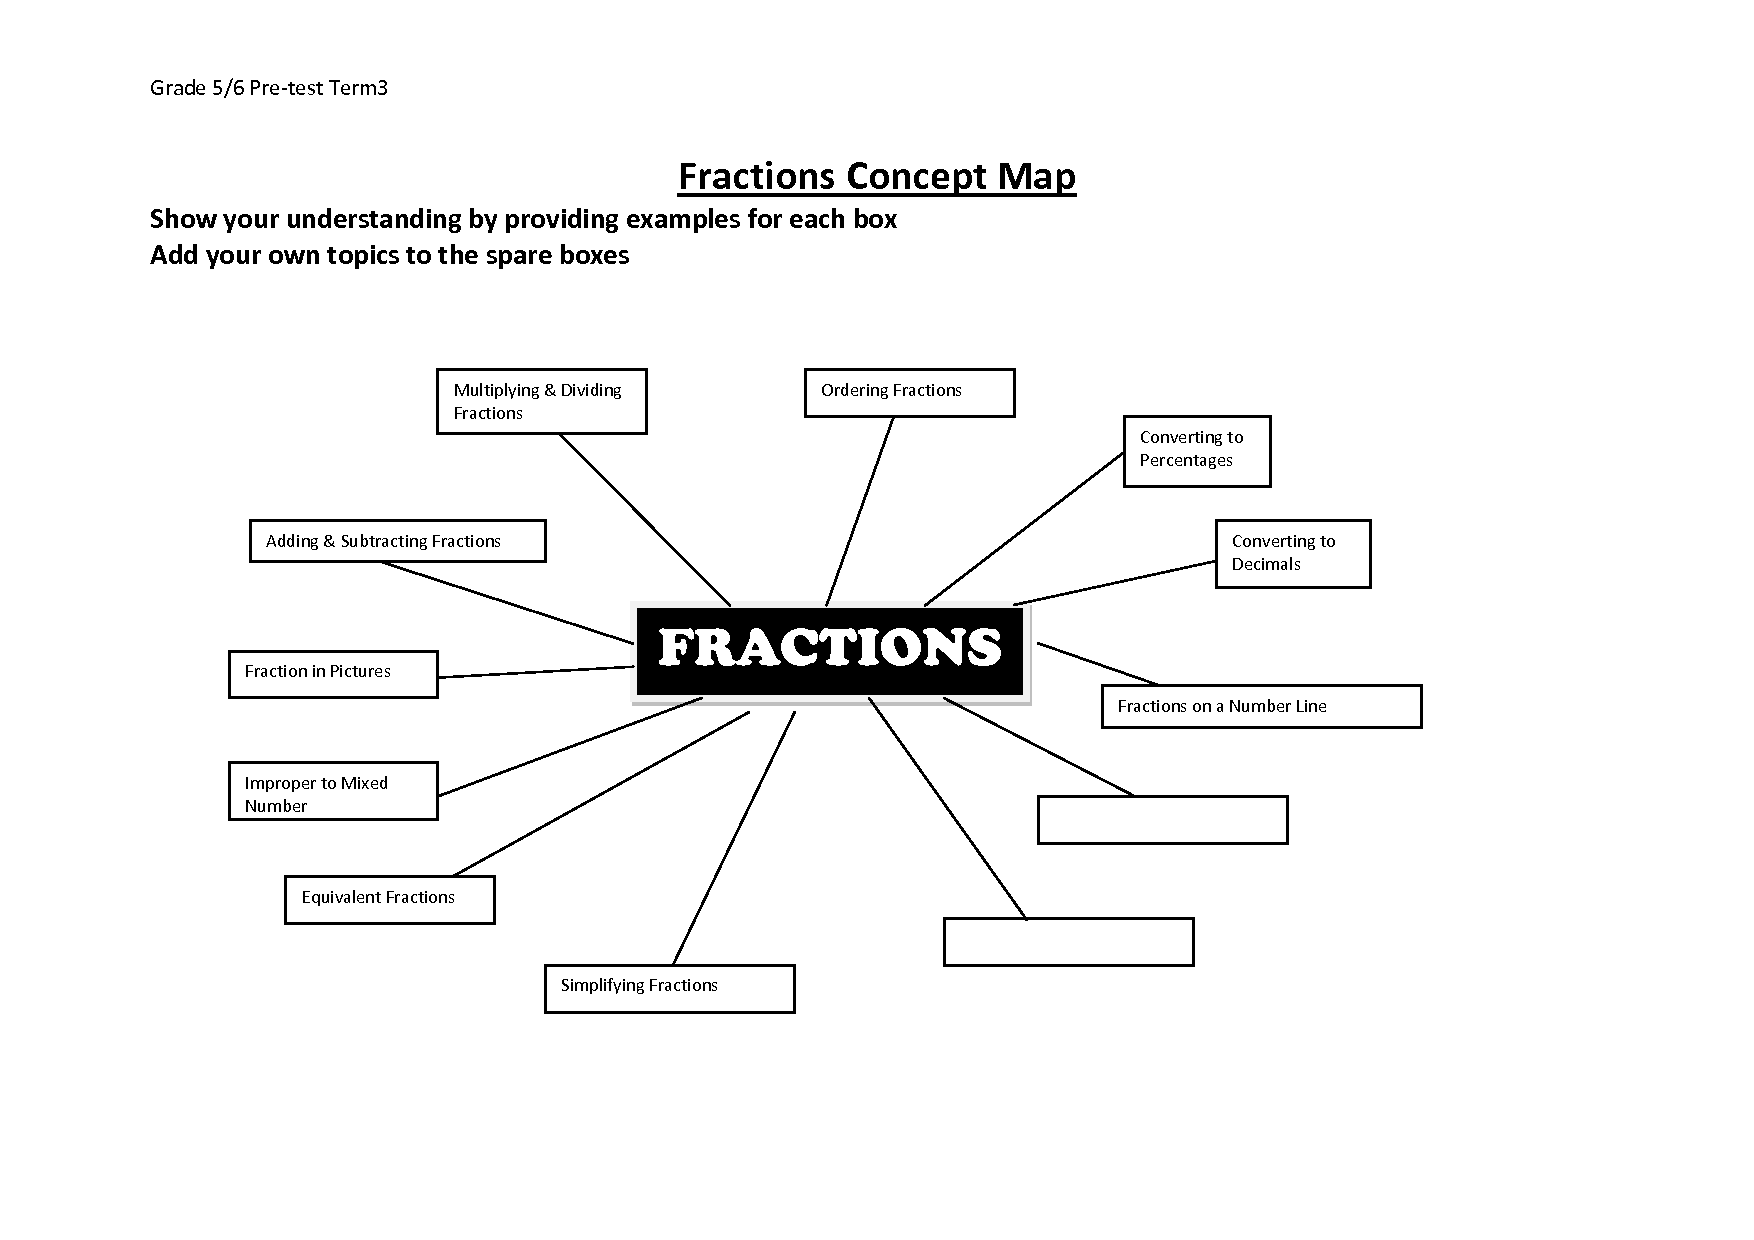 Avid Vocabulary Concept Map.Concept Map Kindergarten Google Search Plc S Concept Map